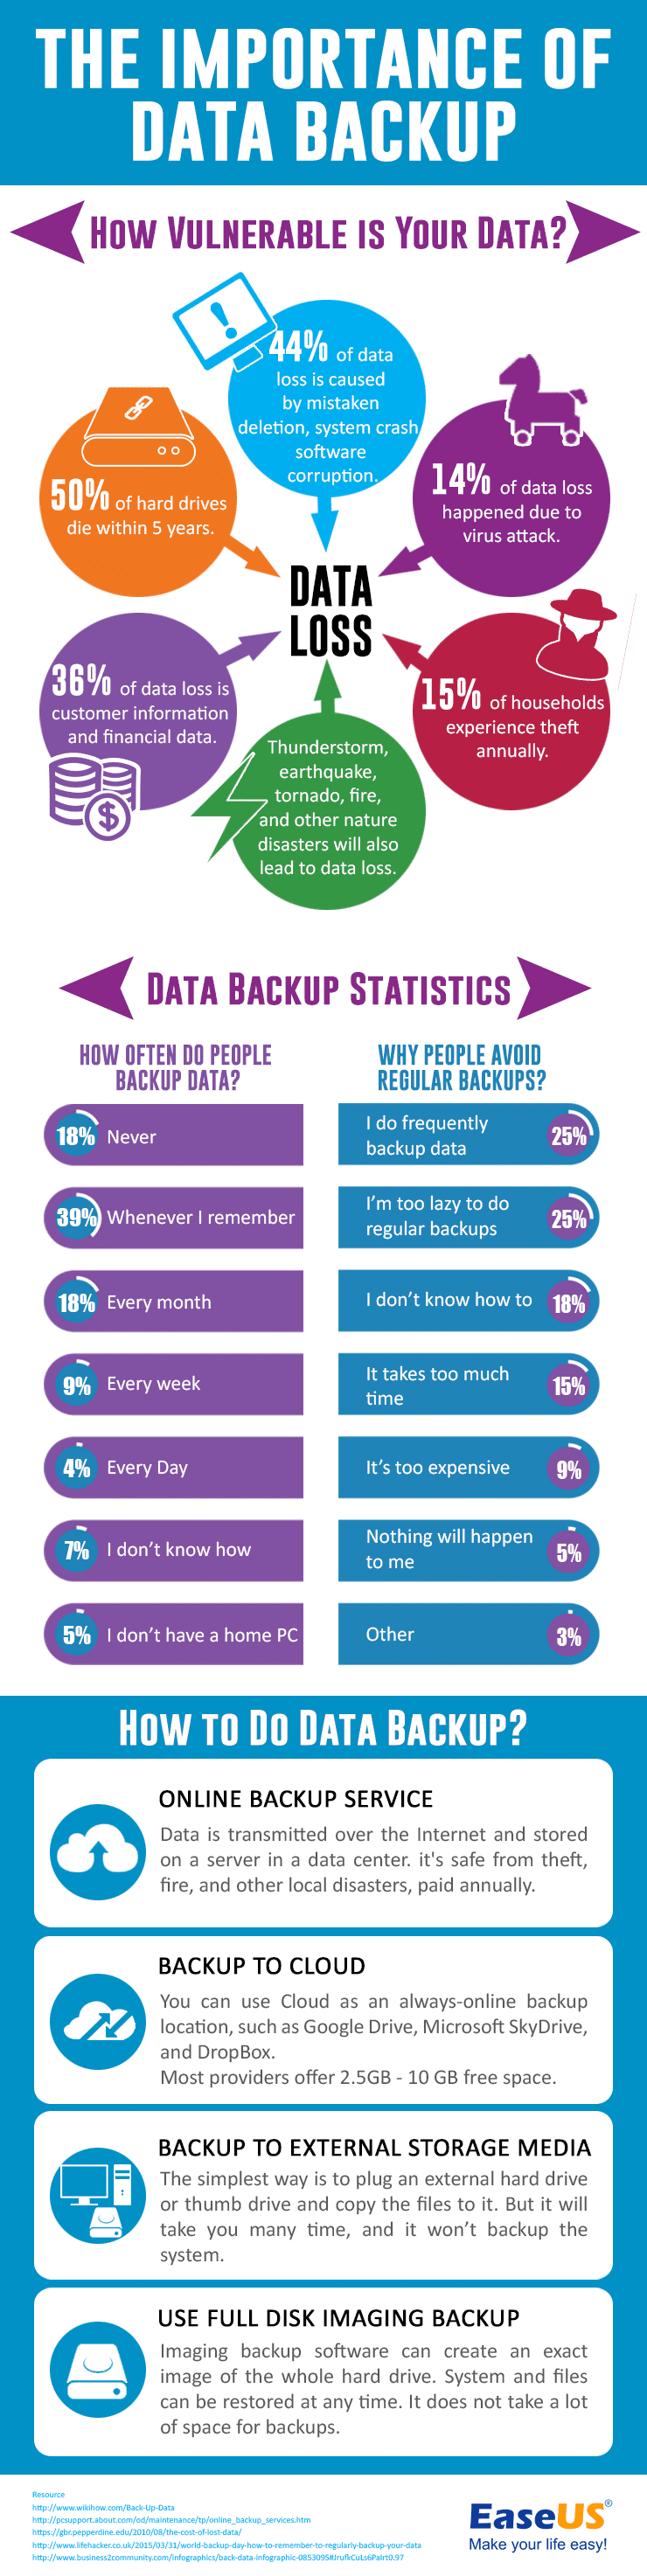 Data Backup Facts And Statistics Infographic